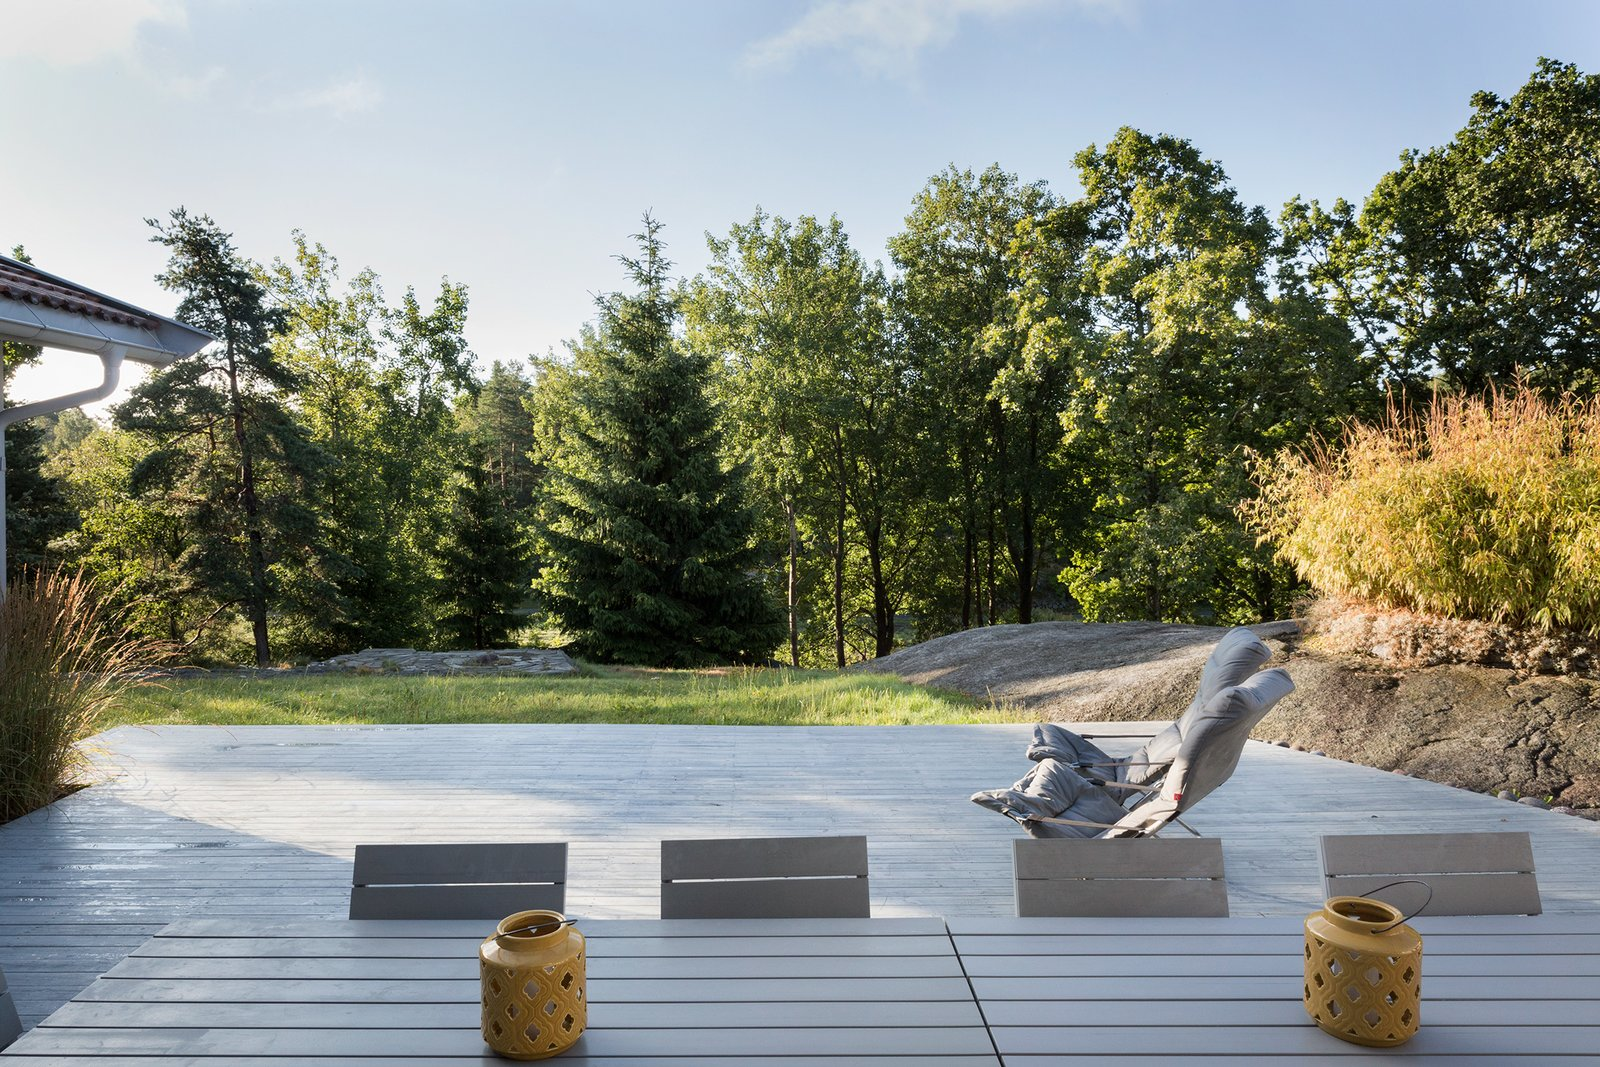 The large outdoor terrace surrounded by trees.